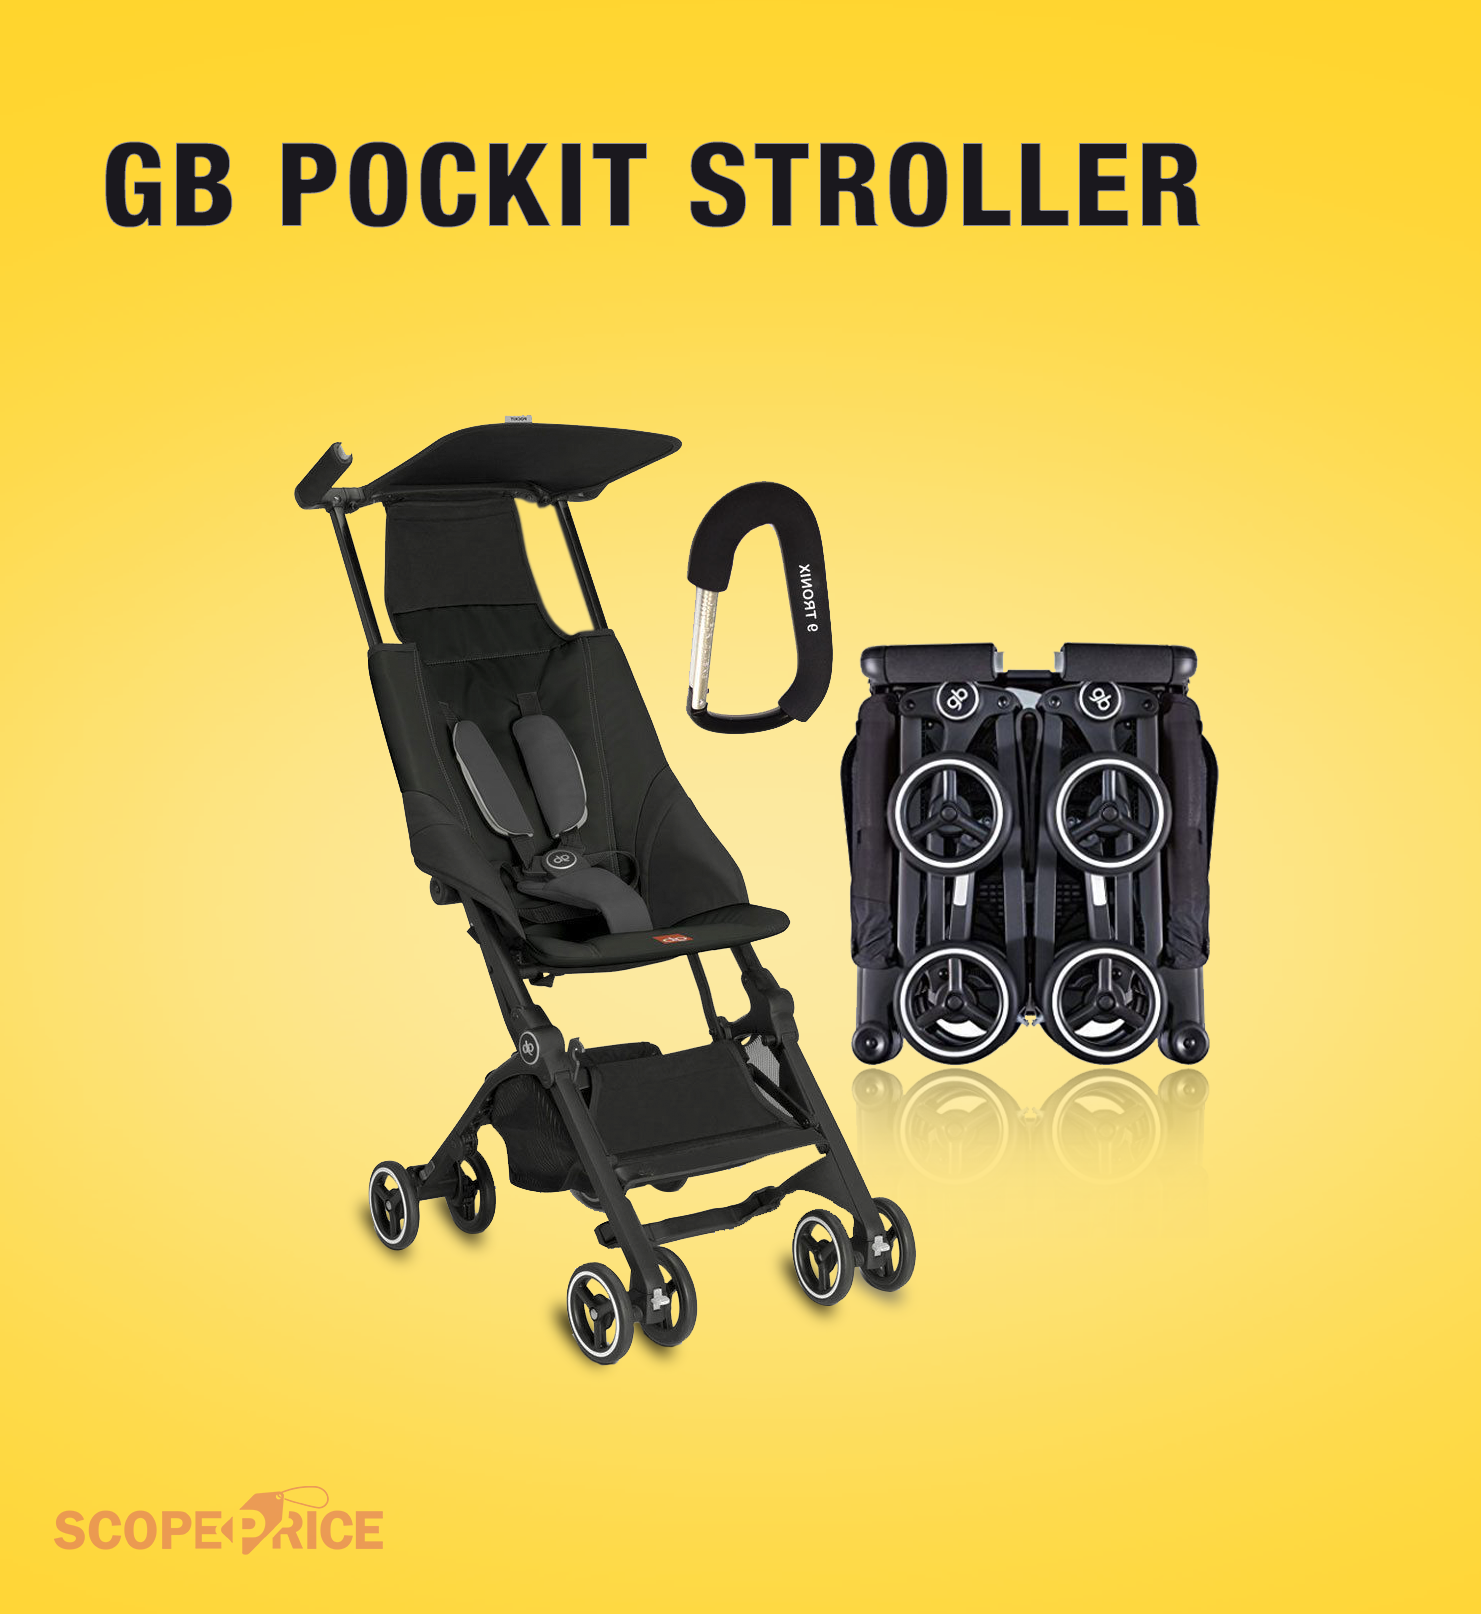 Find the hot deal for gbpockitstroller from Scopeprice